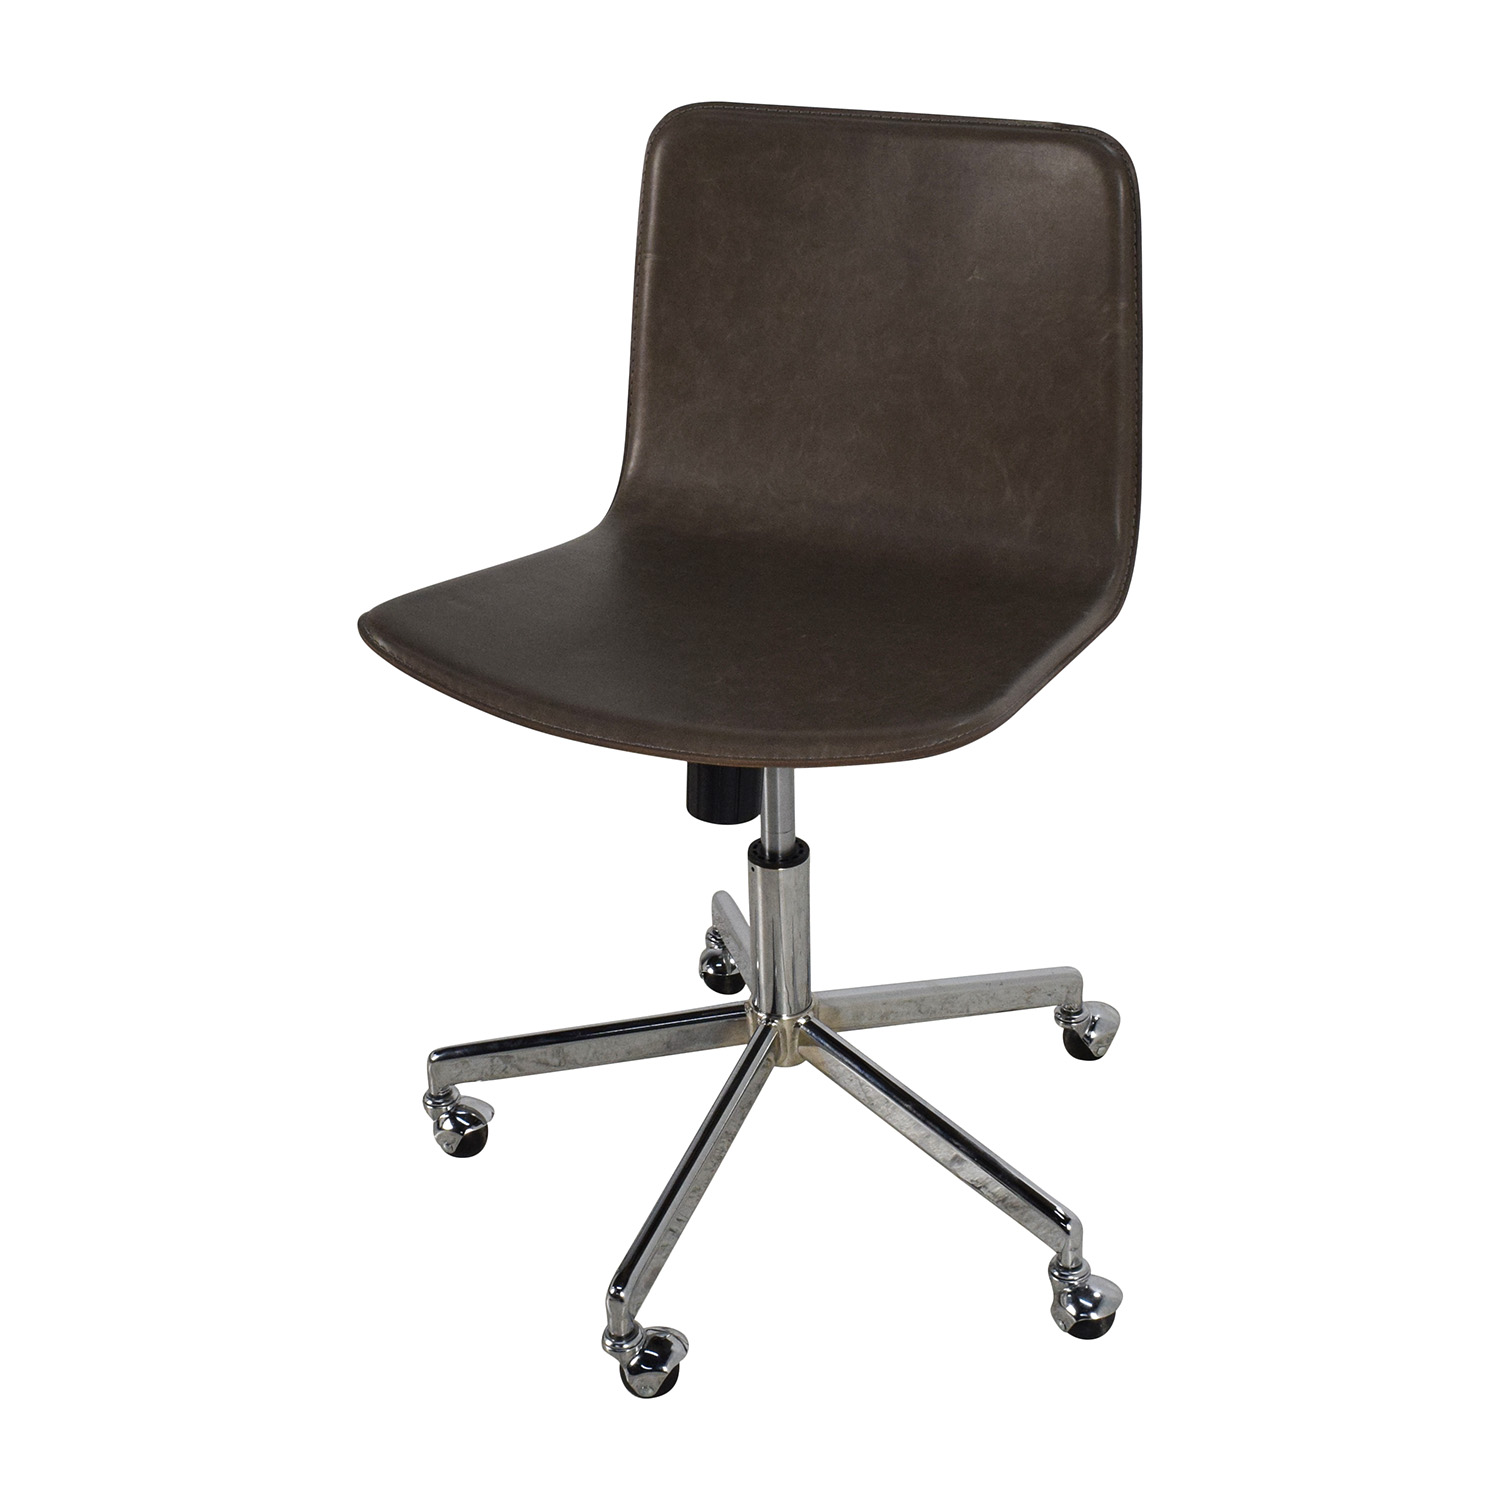 CB2 CB2 Stratum fice Chair coupon